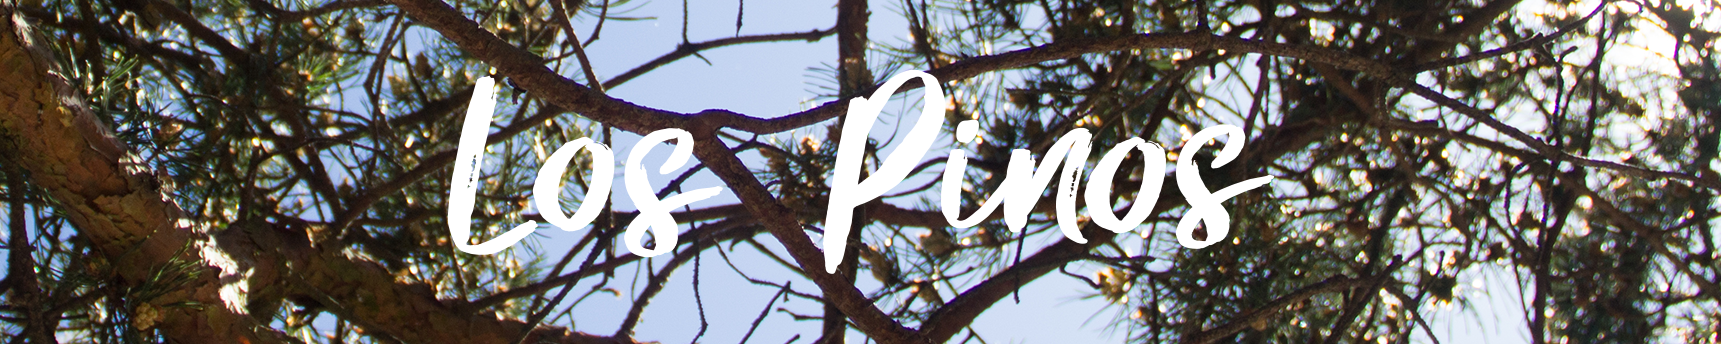 over-ons-header